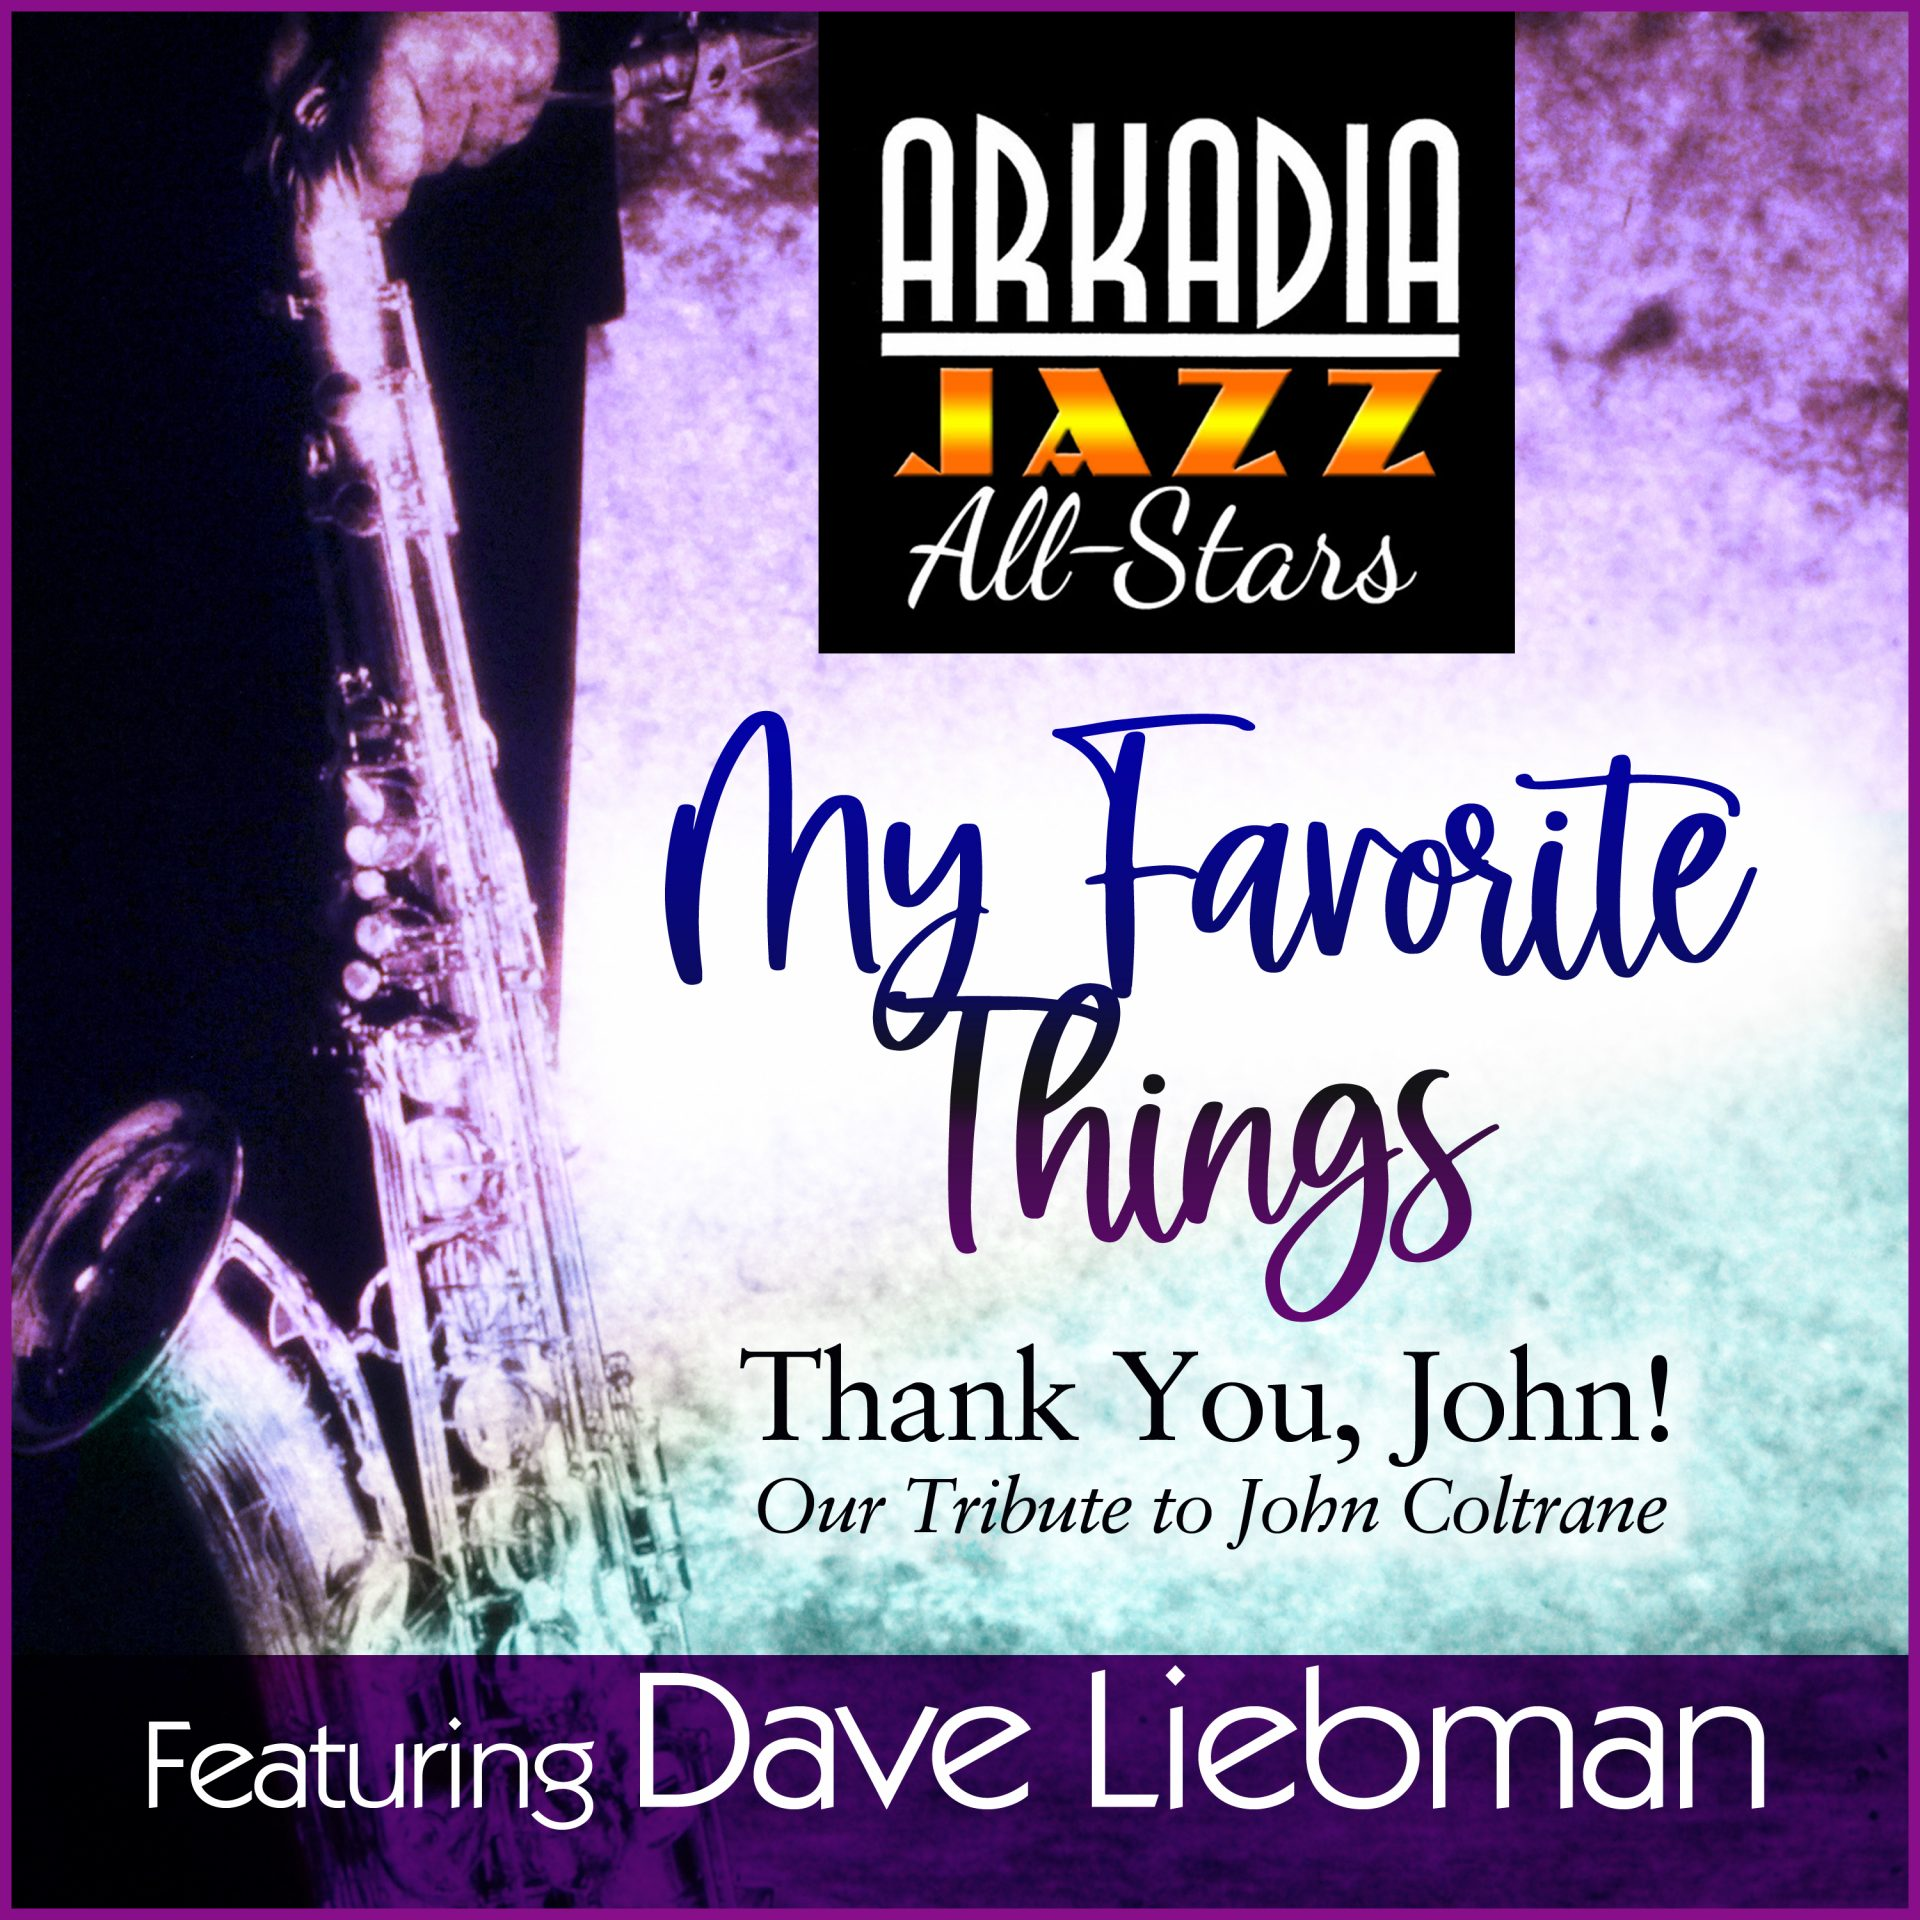 AJAS dave liebman my favorite things John clean 3000px v3 4 1 scaled